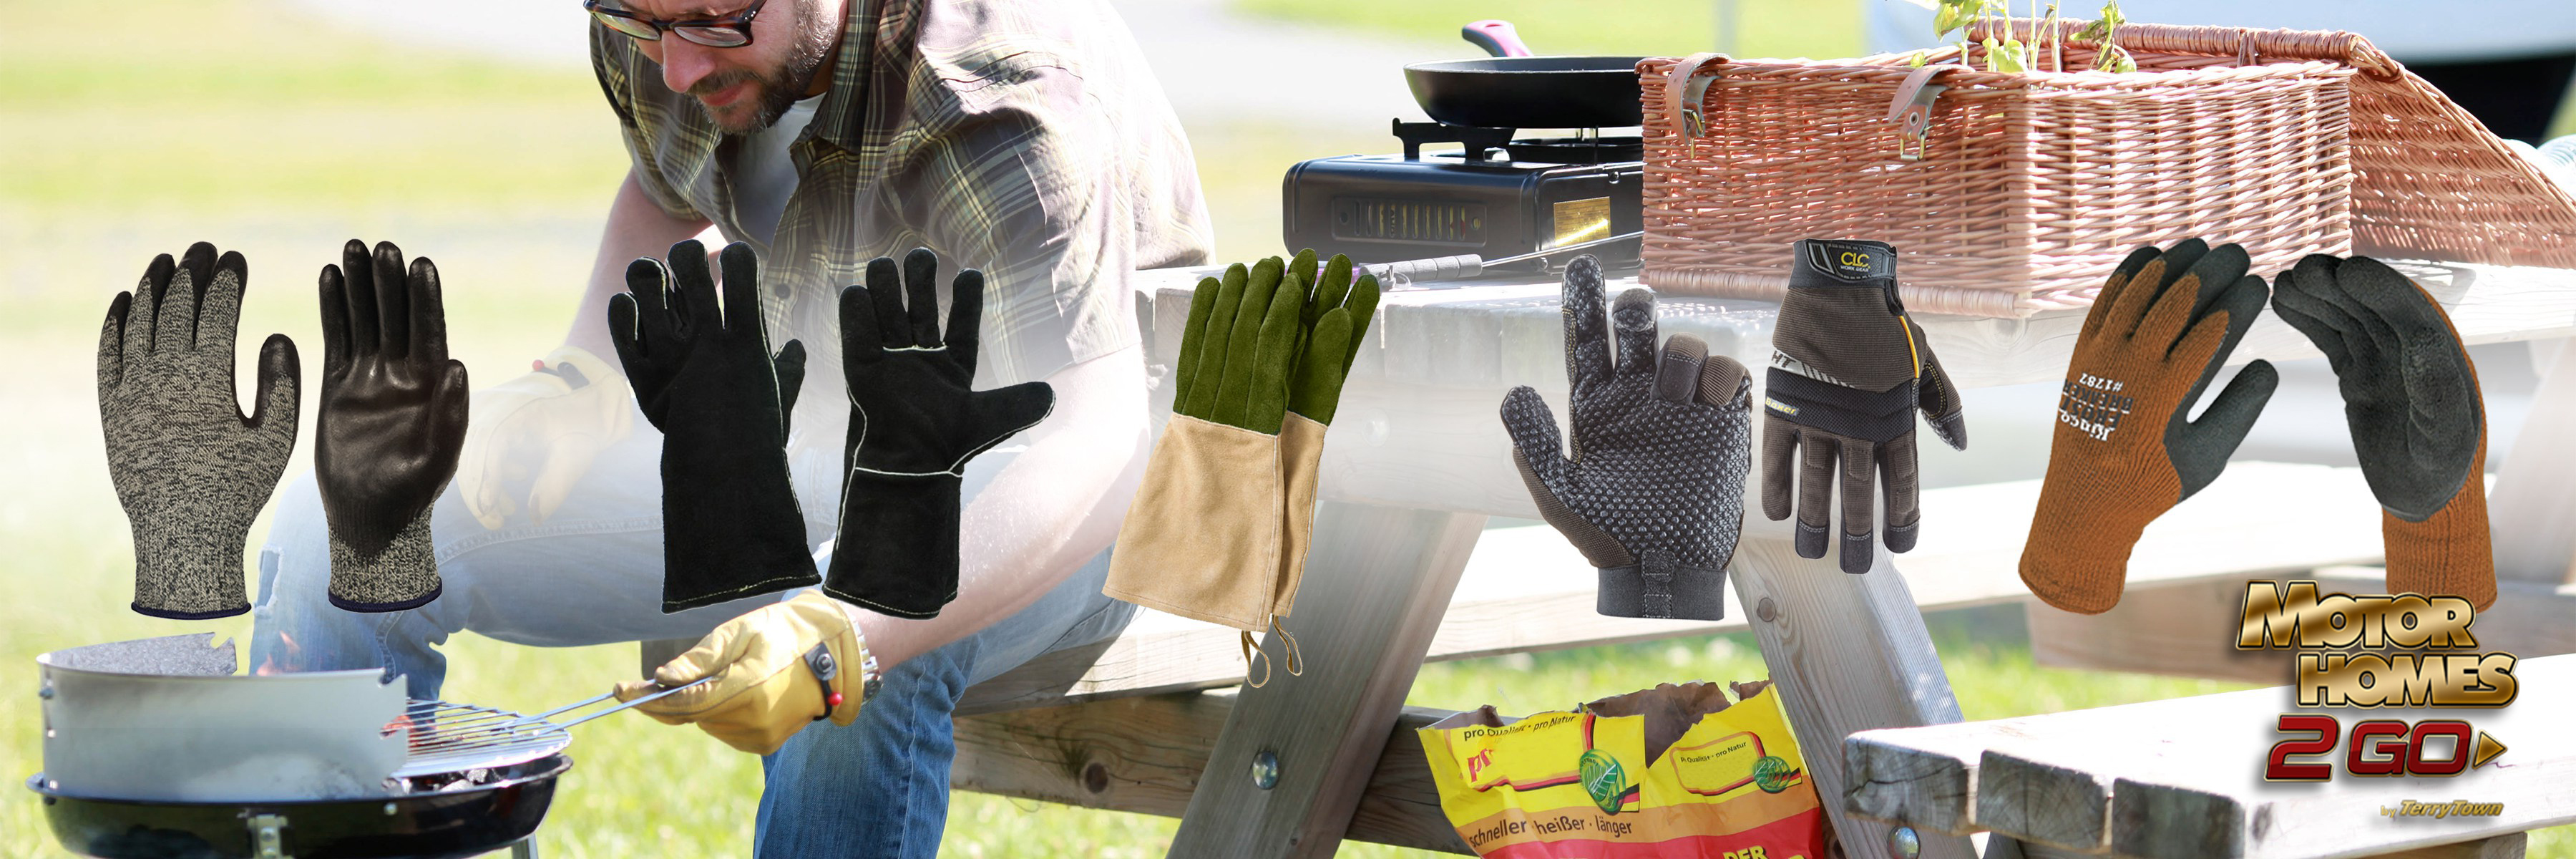 best camping gloves - man grilling banner